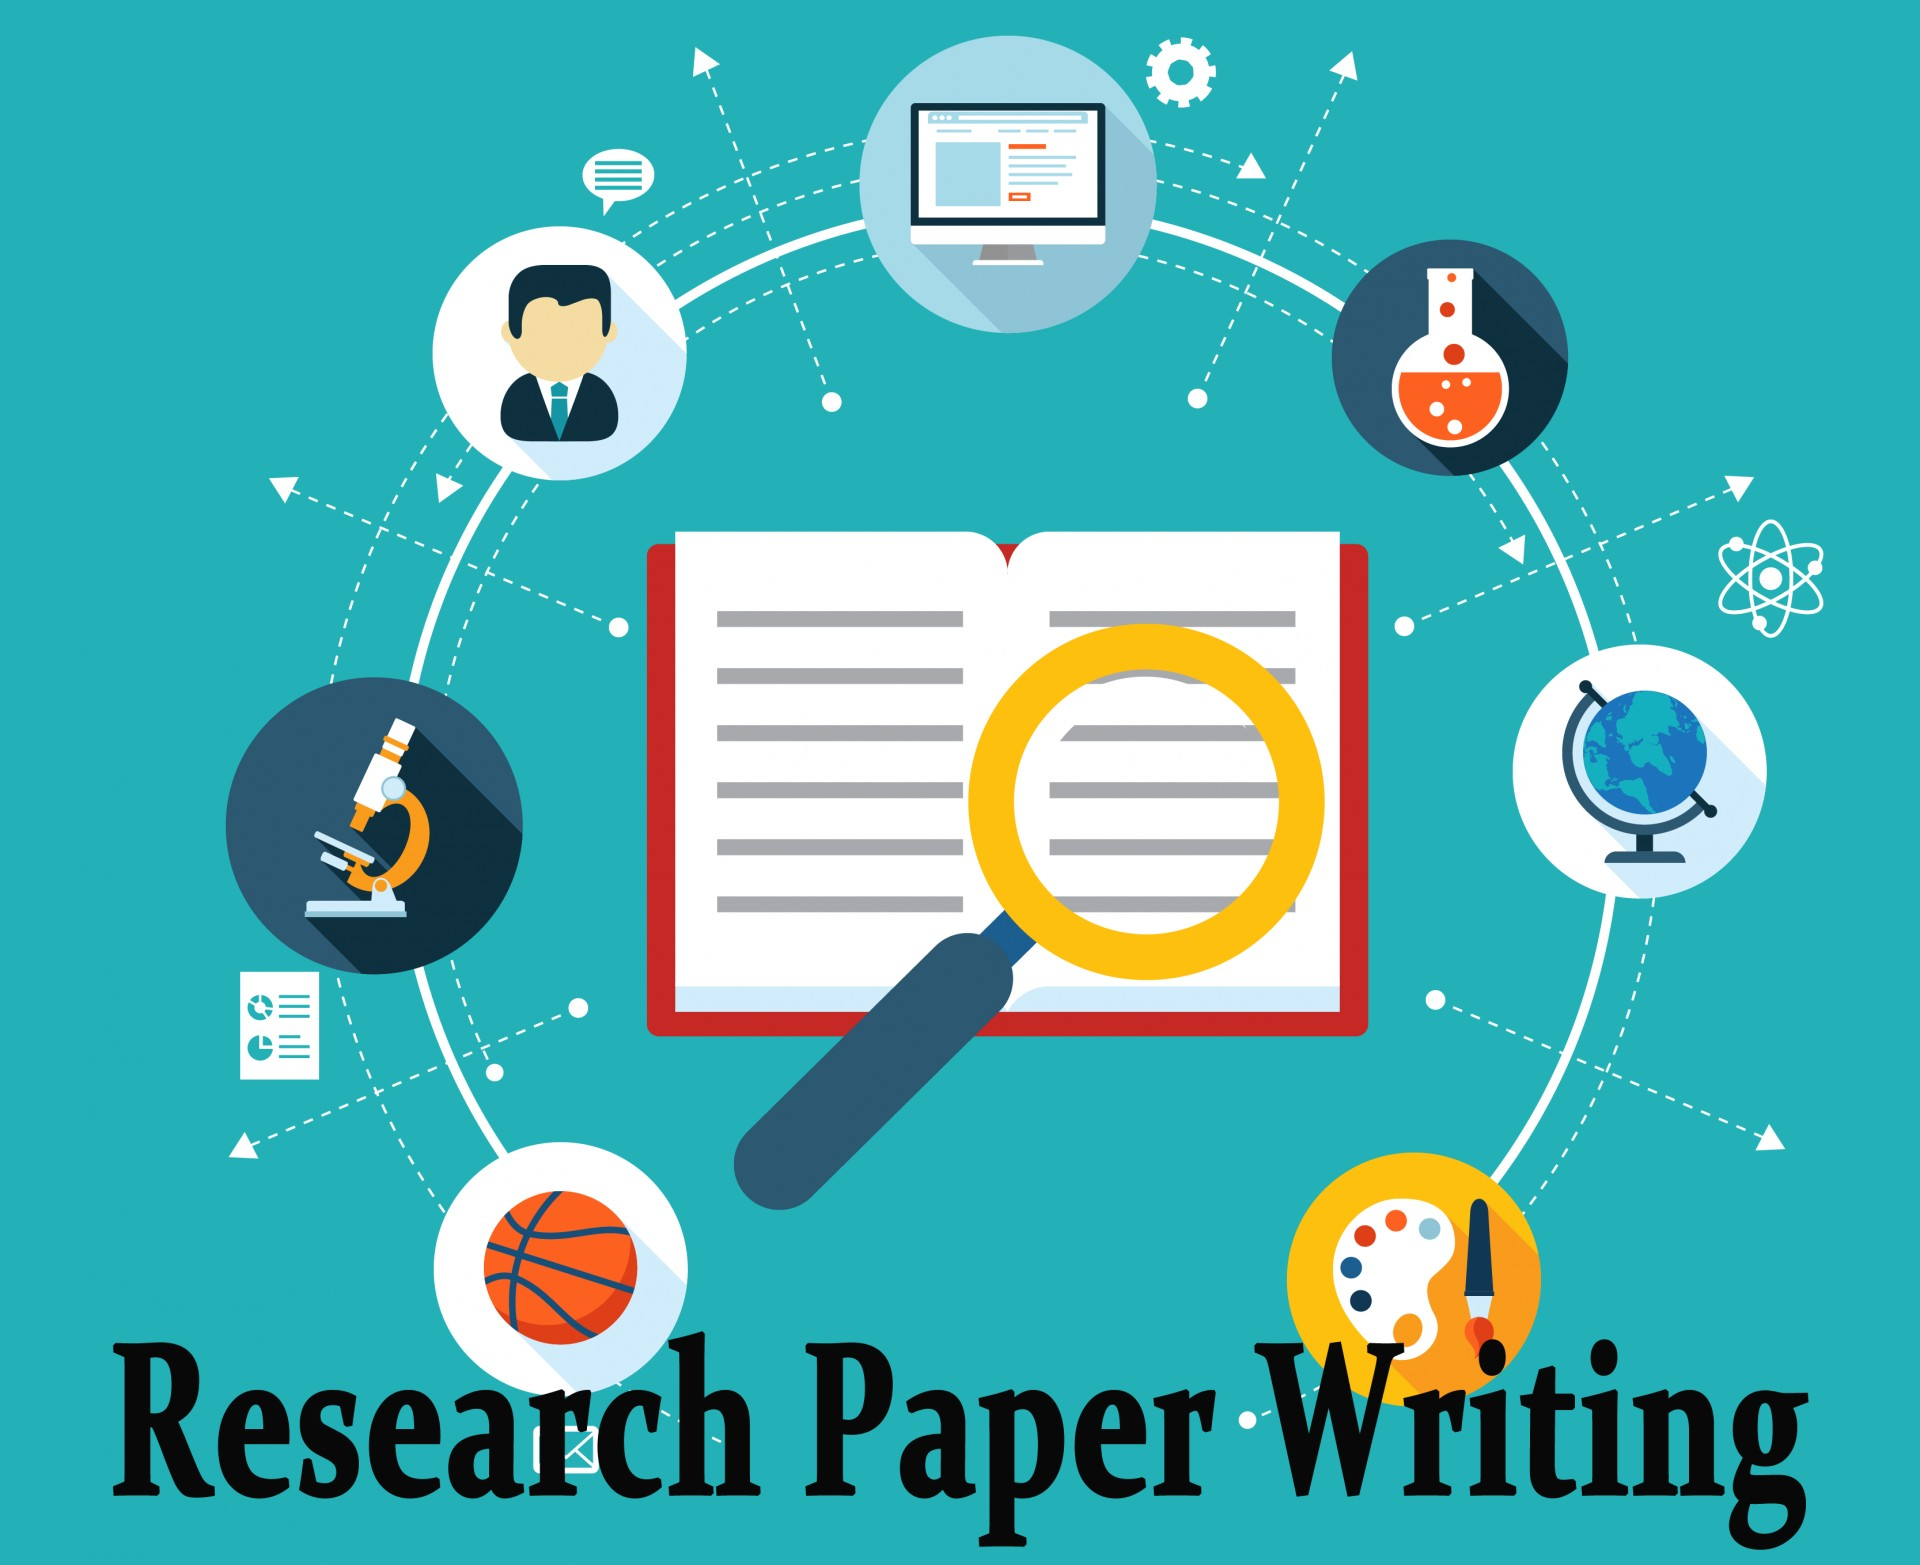 014 503 Effective Research Writing Researchs Fascinating Papers Paper Skills Ppt Pdf Tips 1920